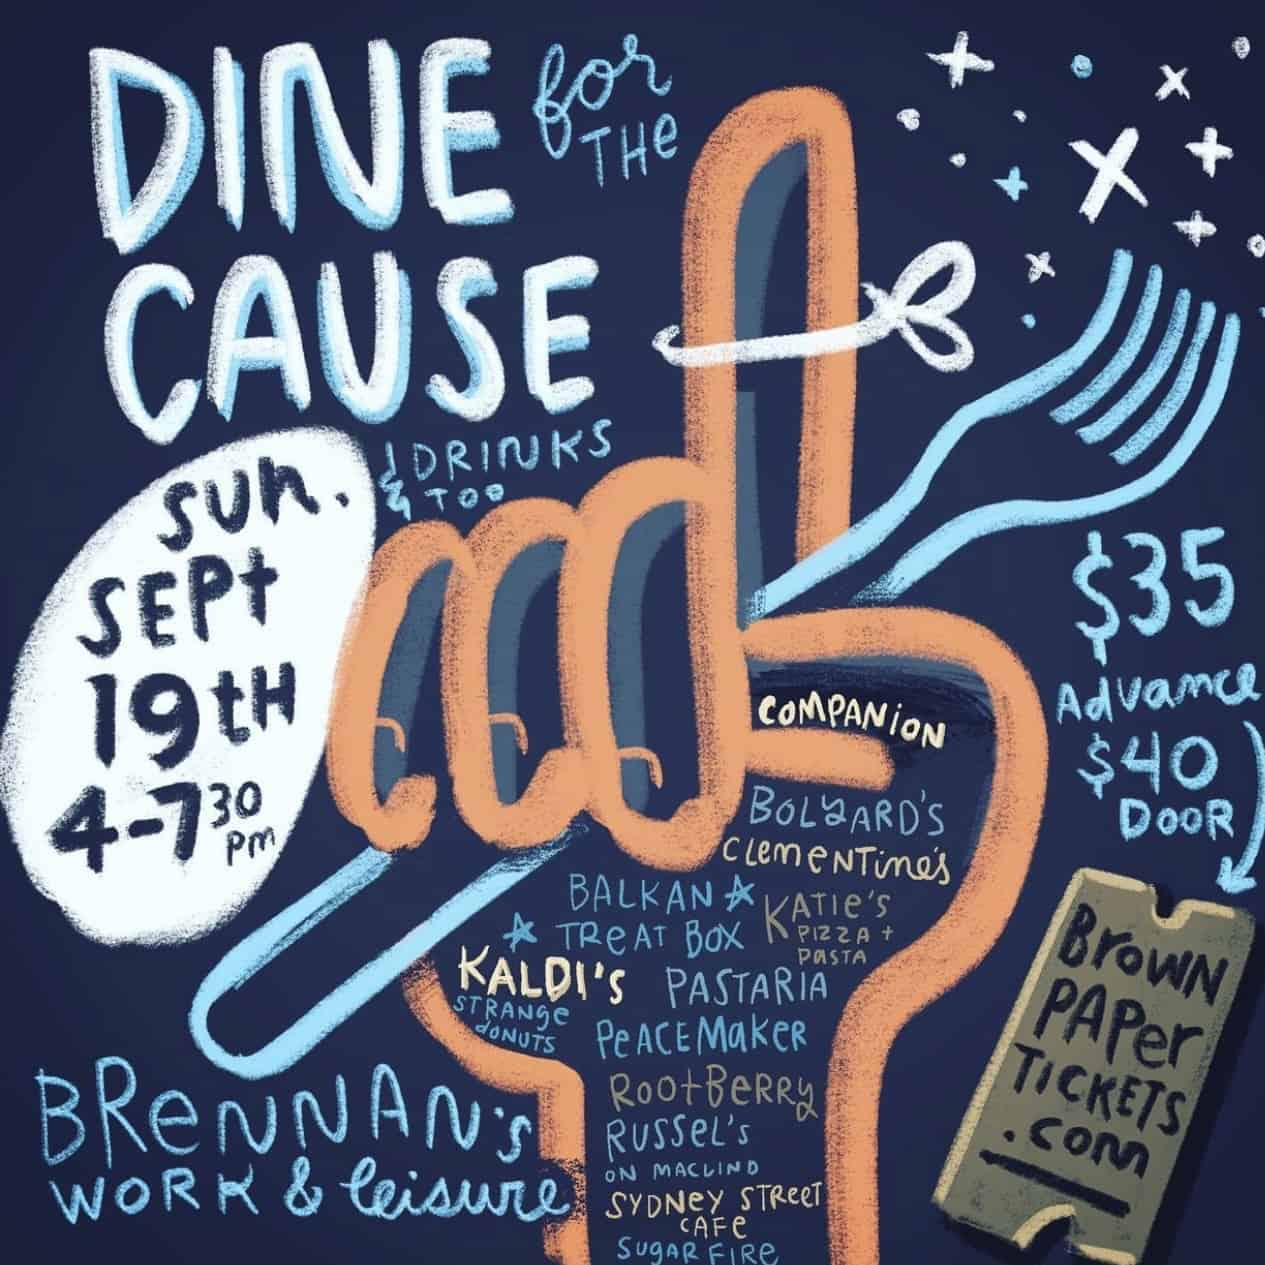 Dine for the Cause 2021 flyer